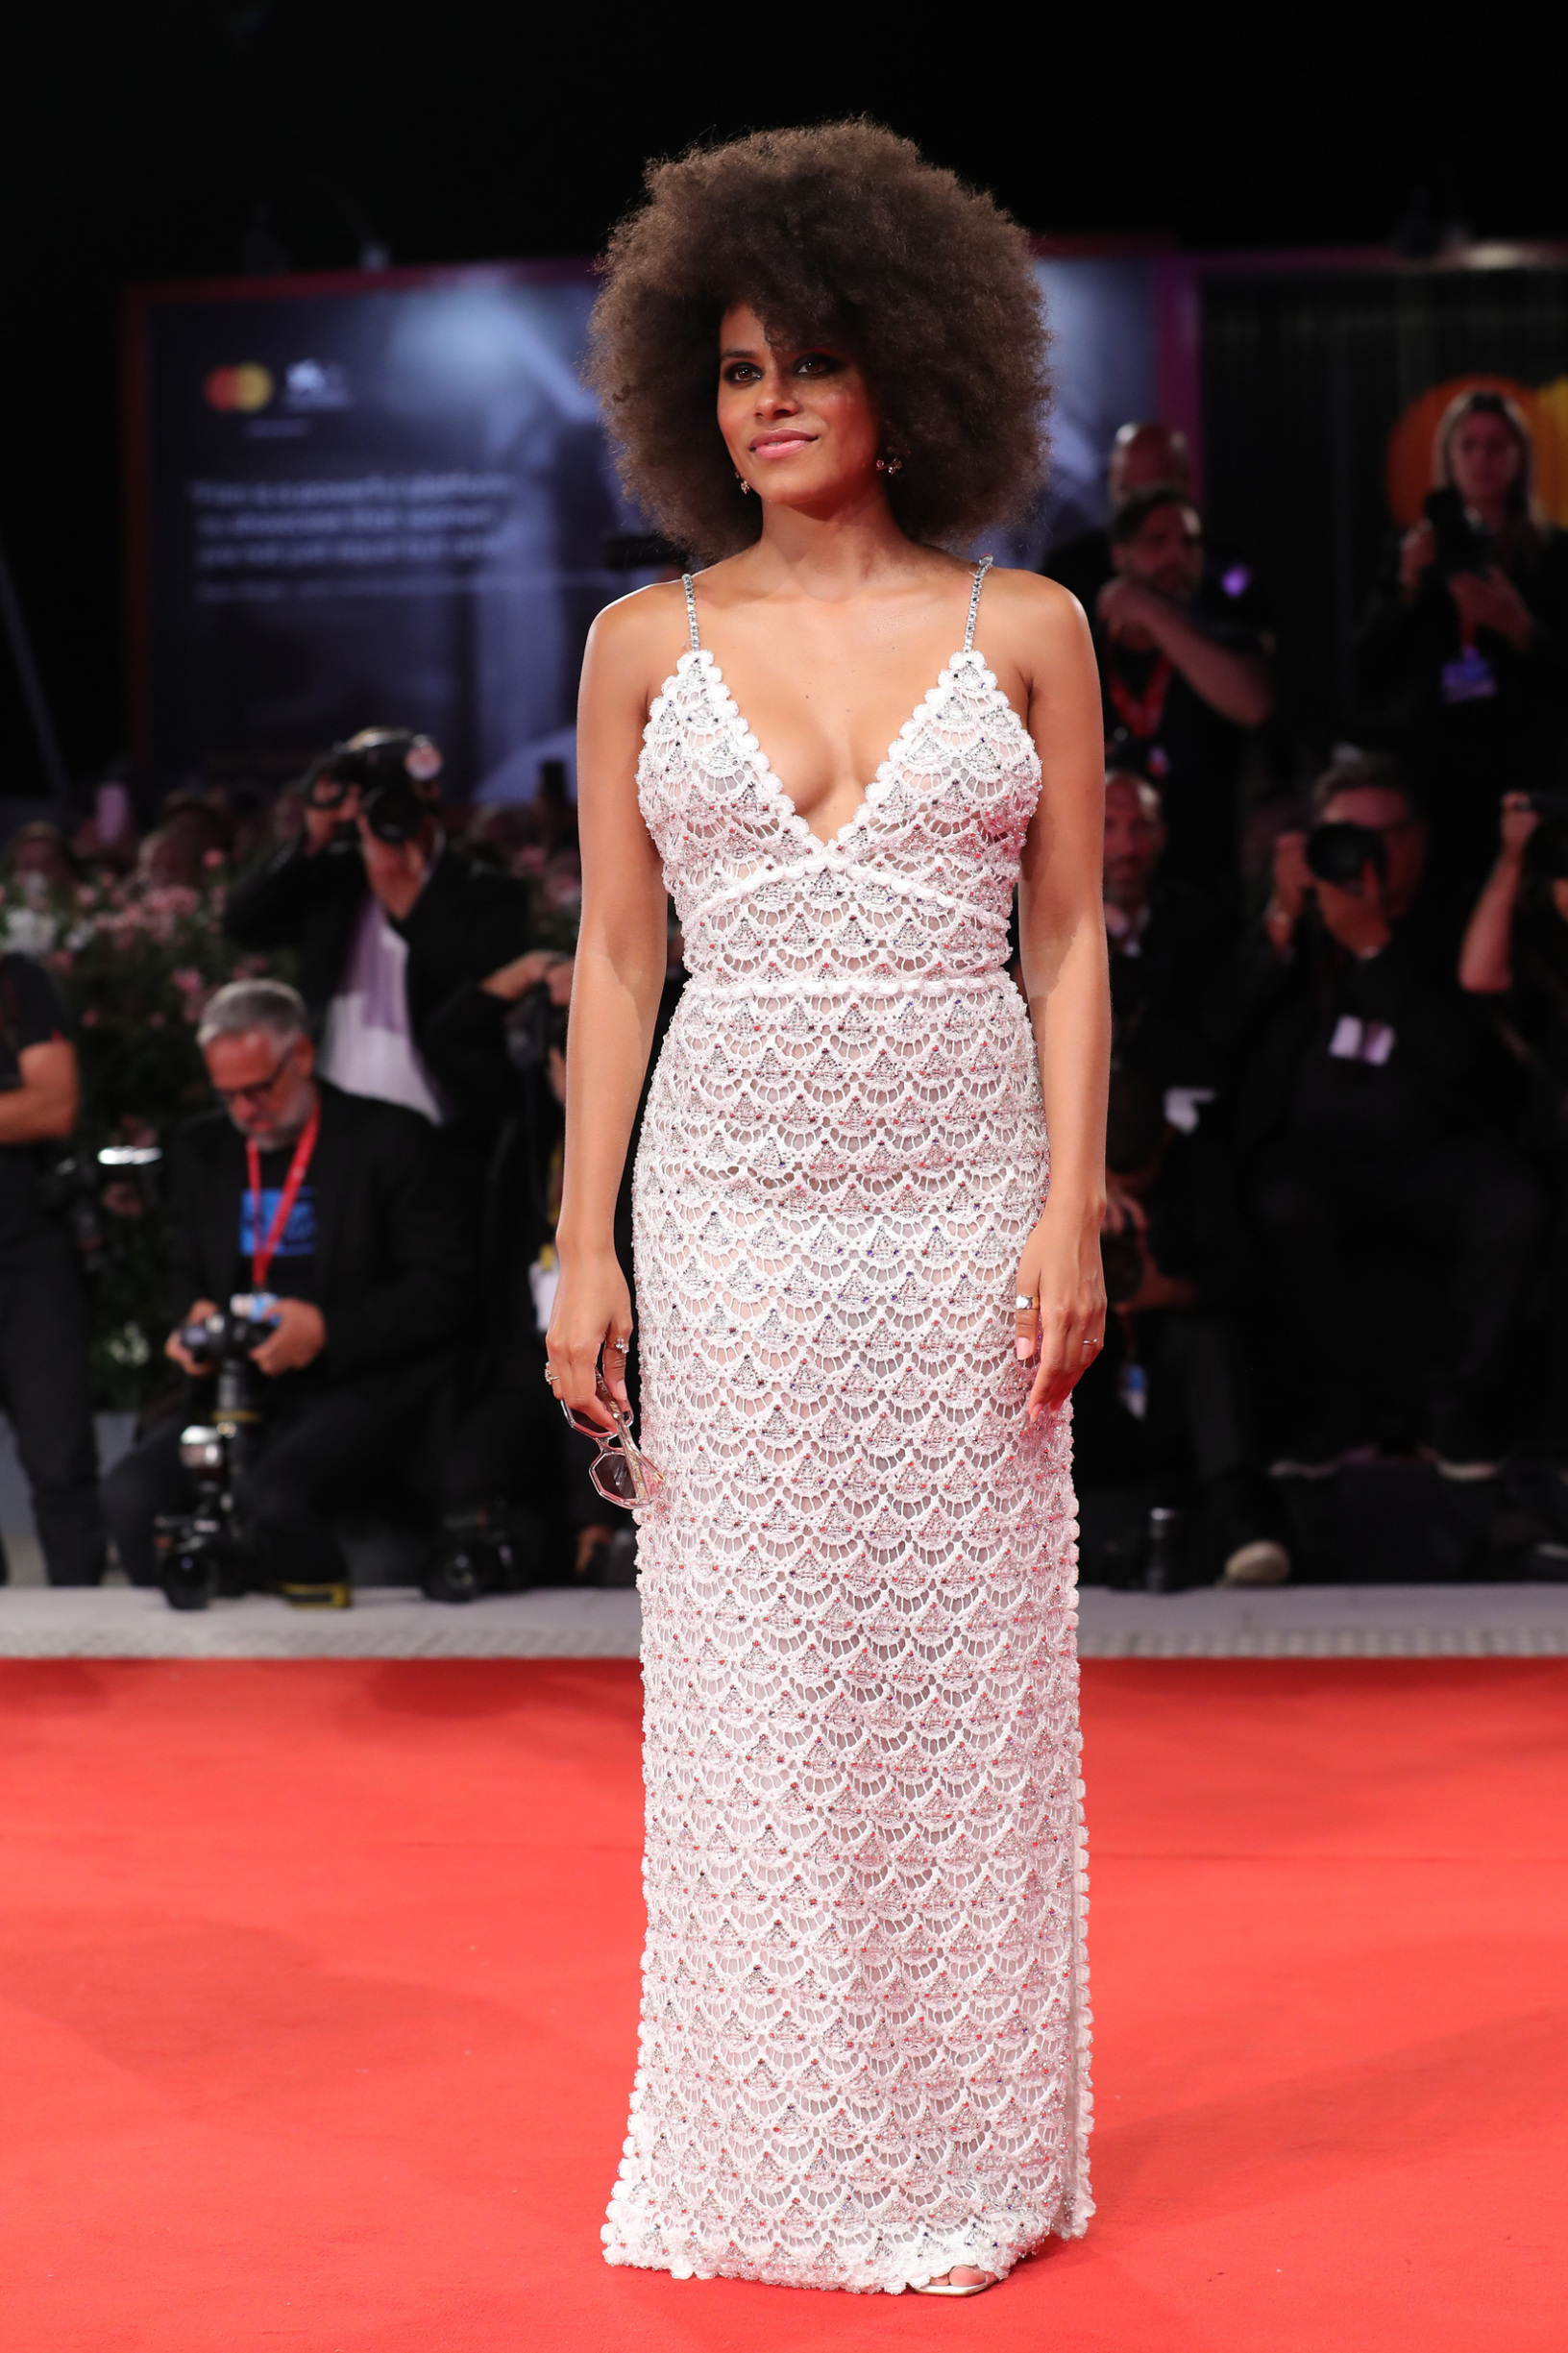 VENICE, ITALY - AUGUST 30:  Zazie Beetz walks the red carpet ahead of the